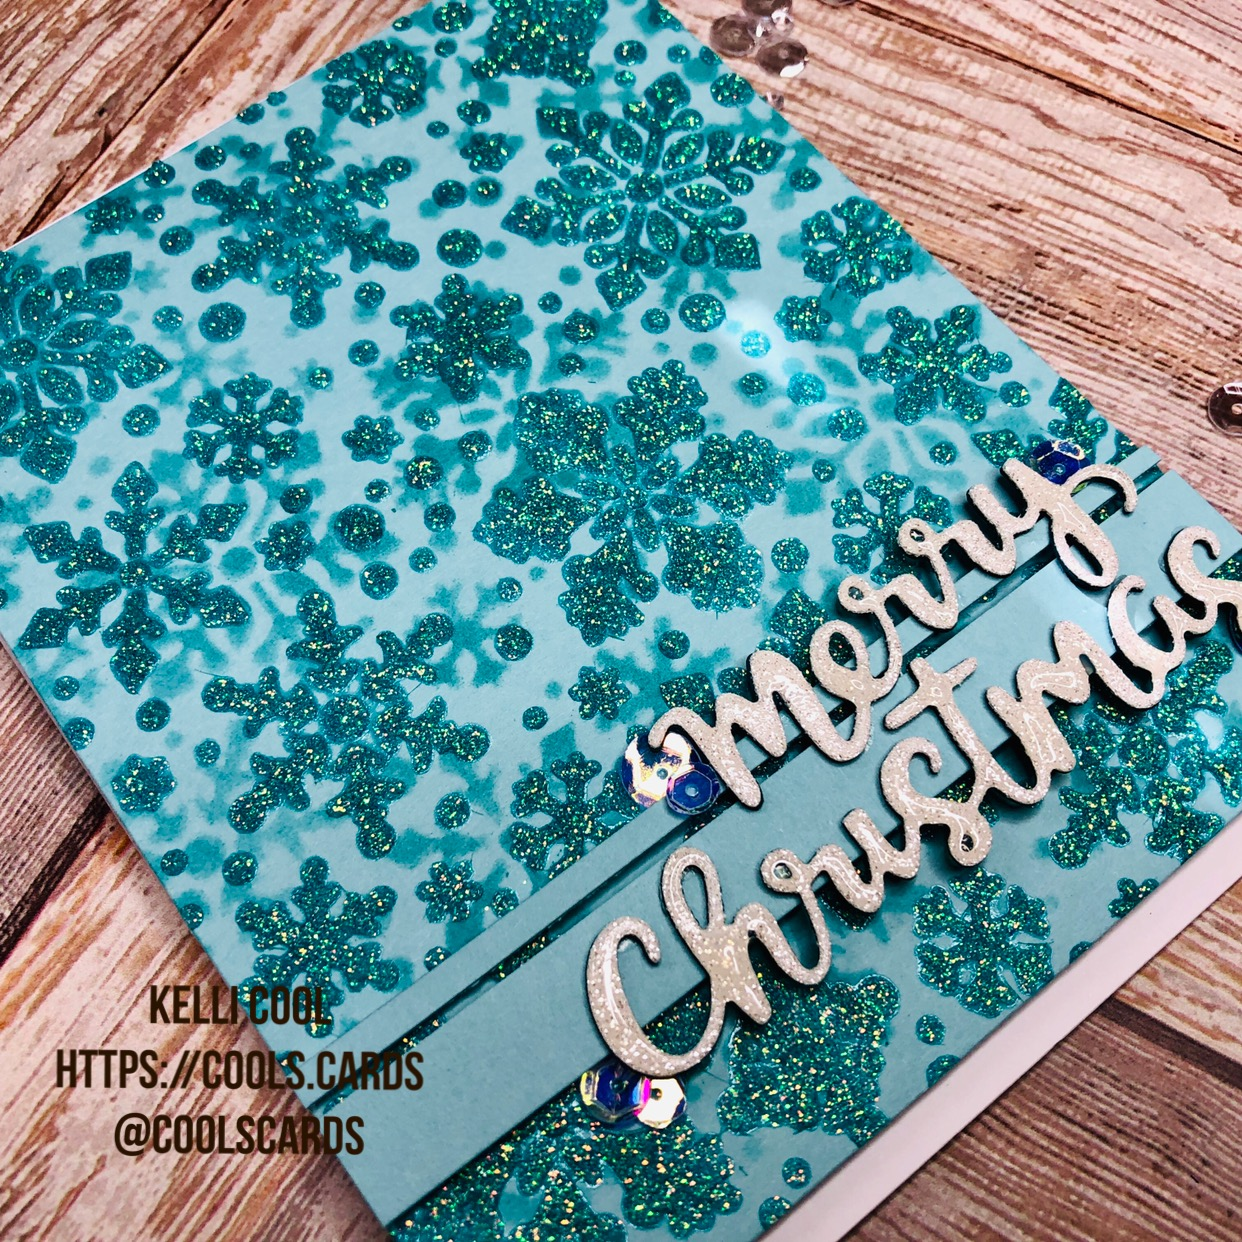 Snowfall Stencil Cards by November Guest Designer Kelli Cool | Snowfall Stencil and Holiday Greeting Die Set by Newton's Nook Designs #newtonsnook #handmade